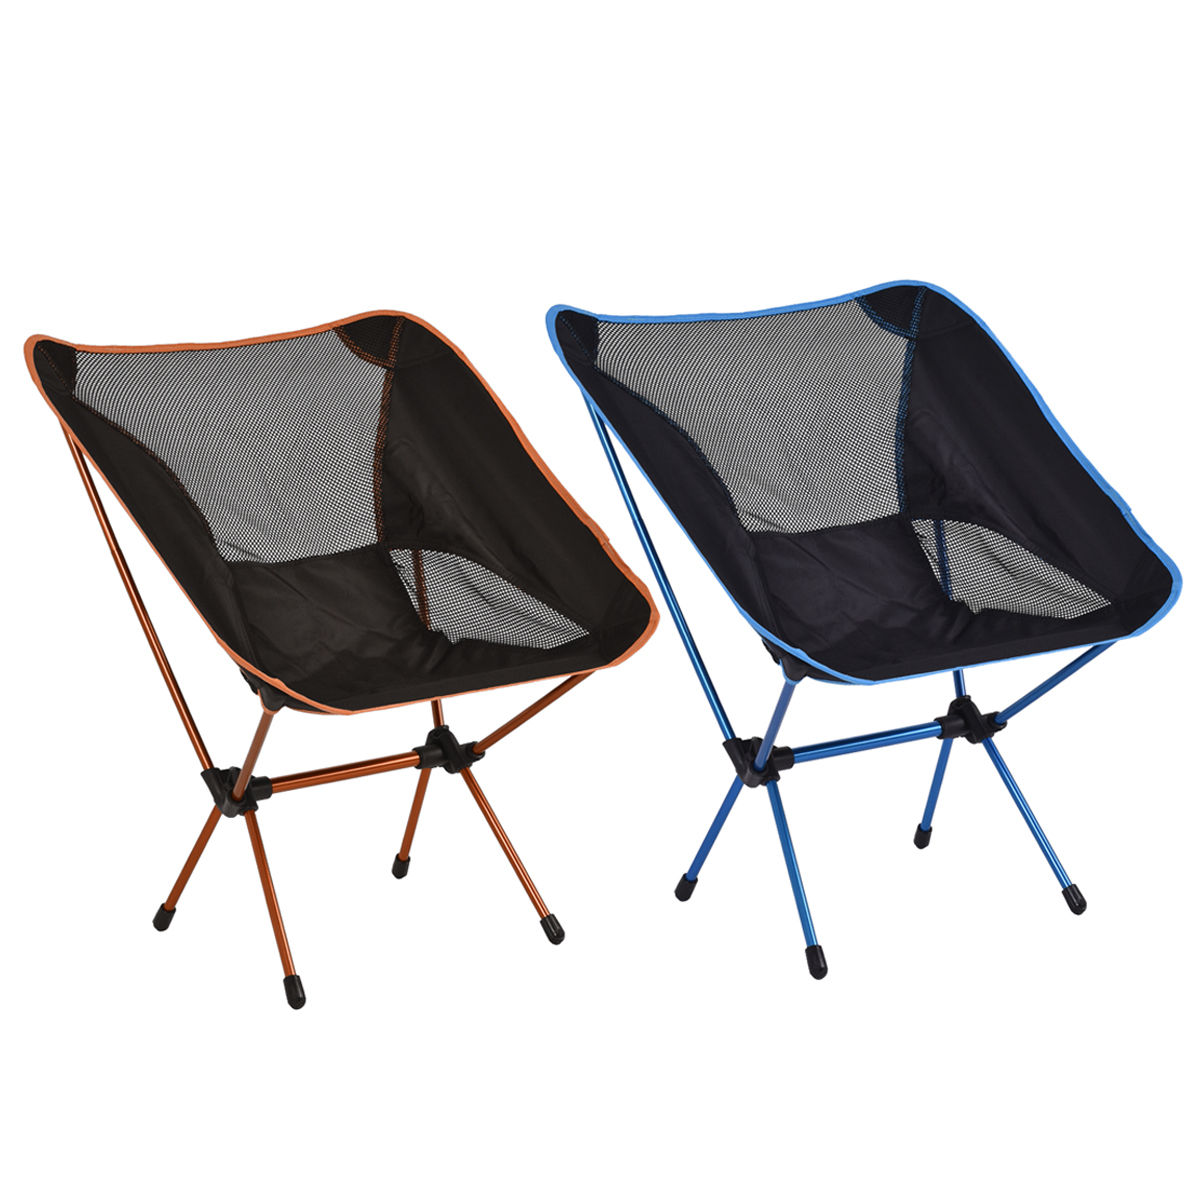 Outdoor Aluminum Hiking Camping Folding Chair w/ Bag OP3071